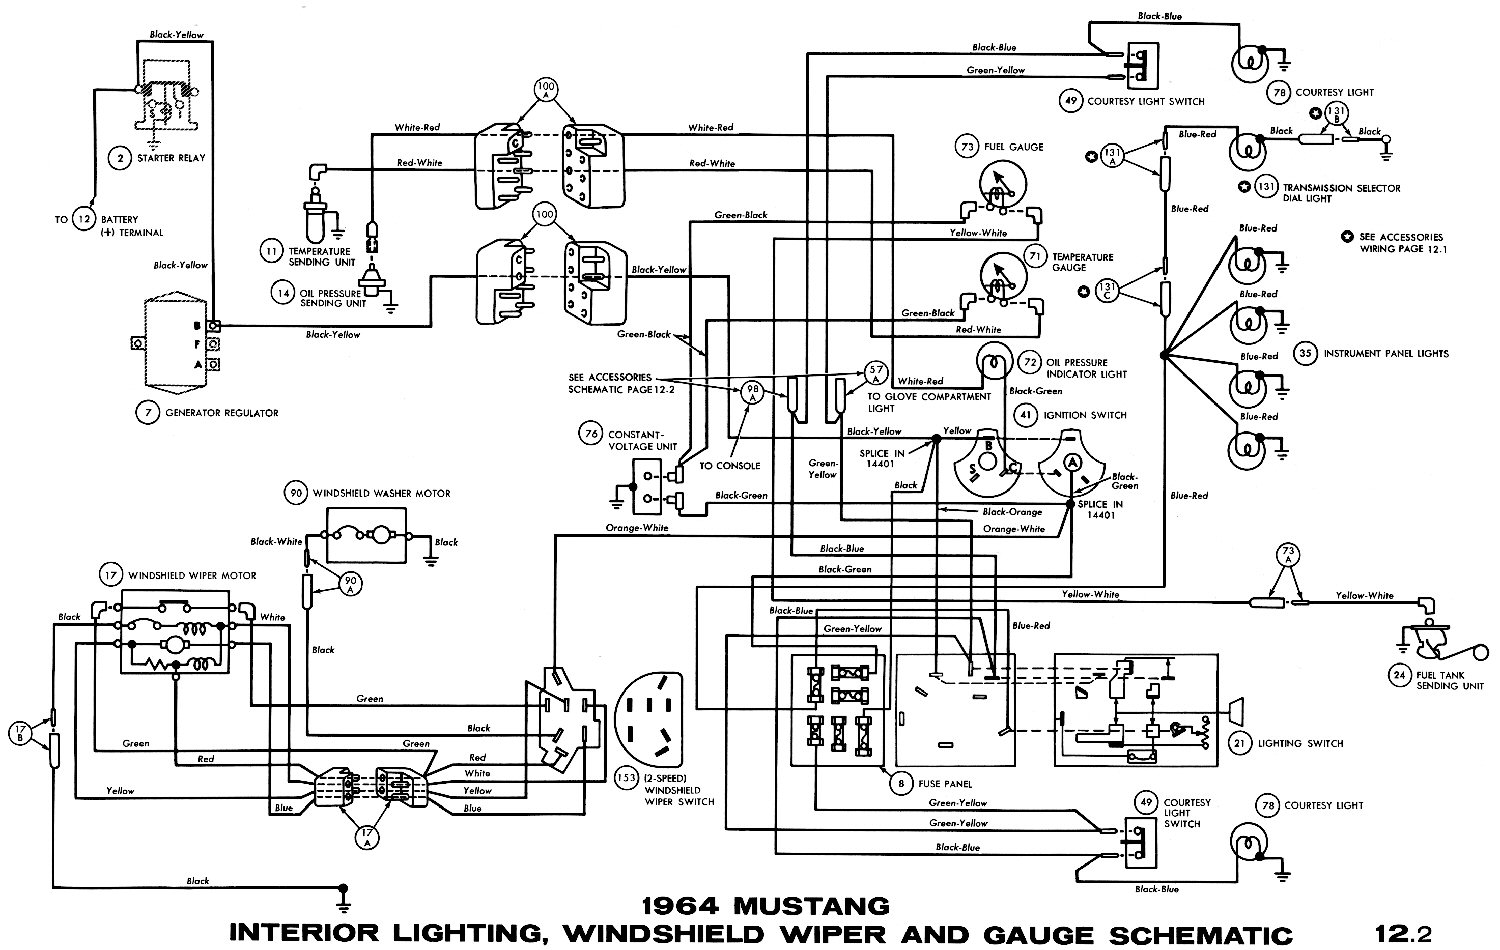 1964k wiring diagram for 1970 ford mustang readingrat net 1970 mustang mach 1 wiring diagram at gsmx.co